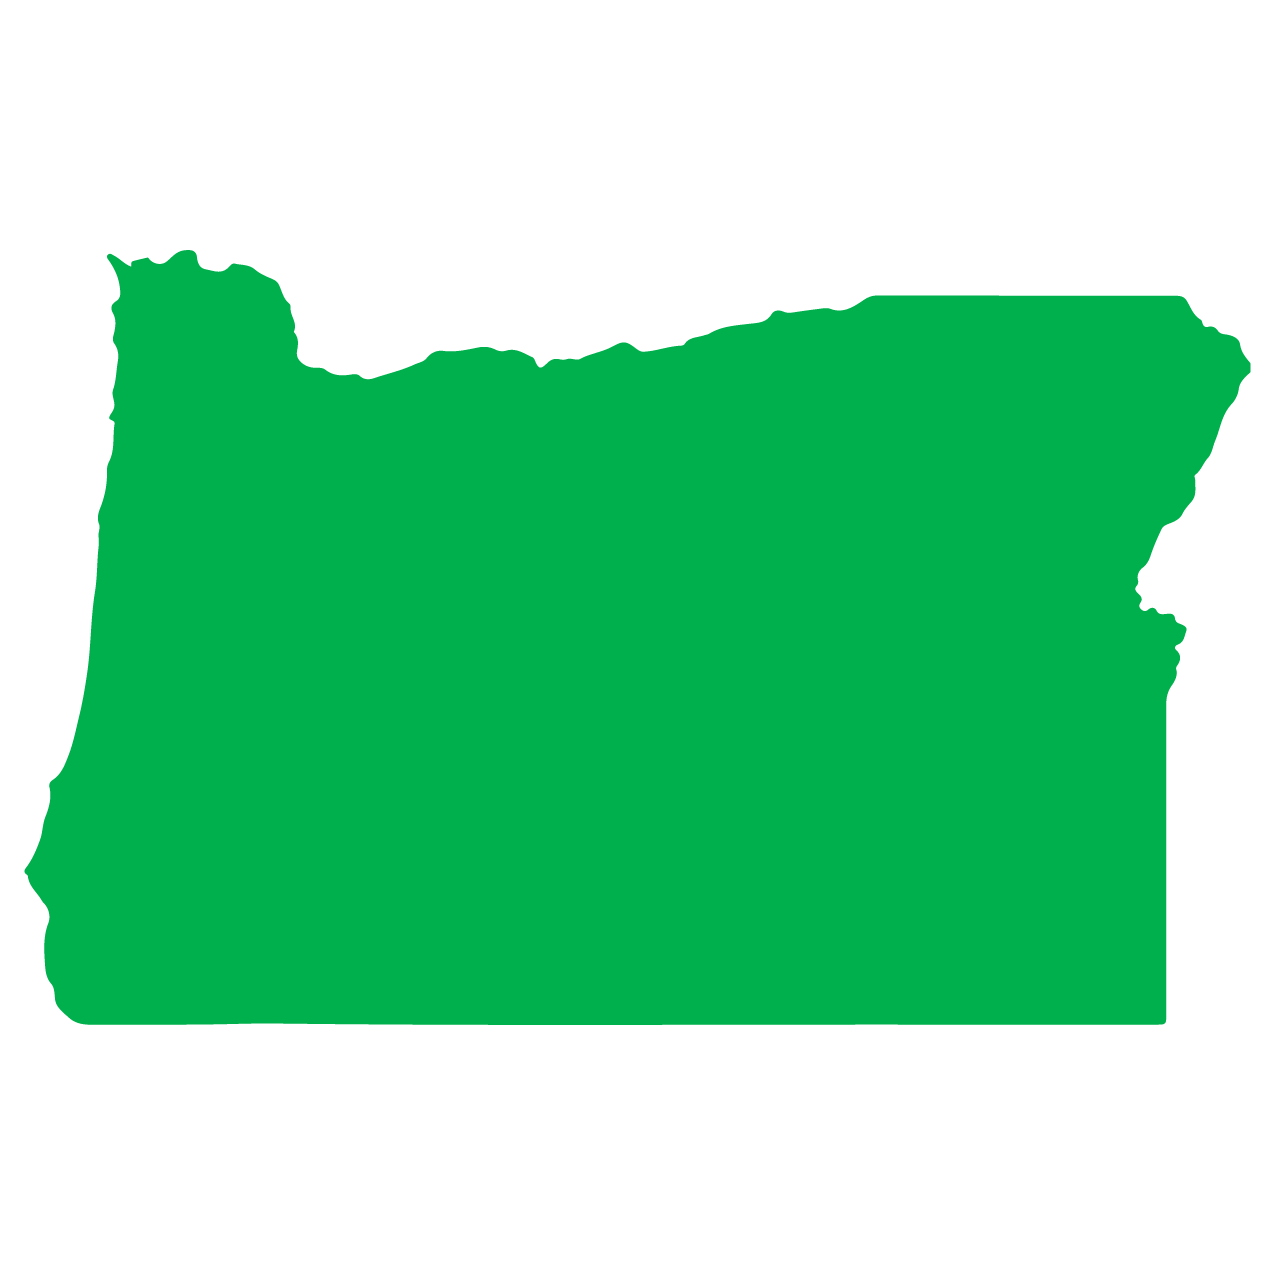 States_Oregon.png